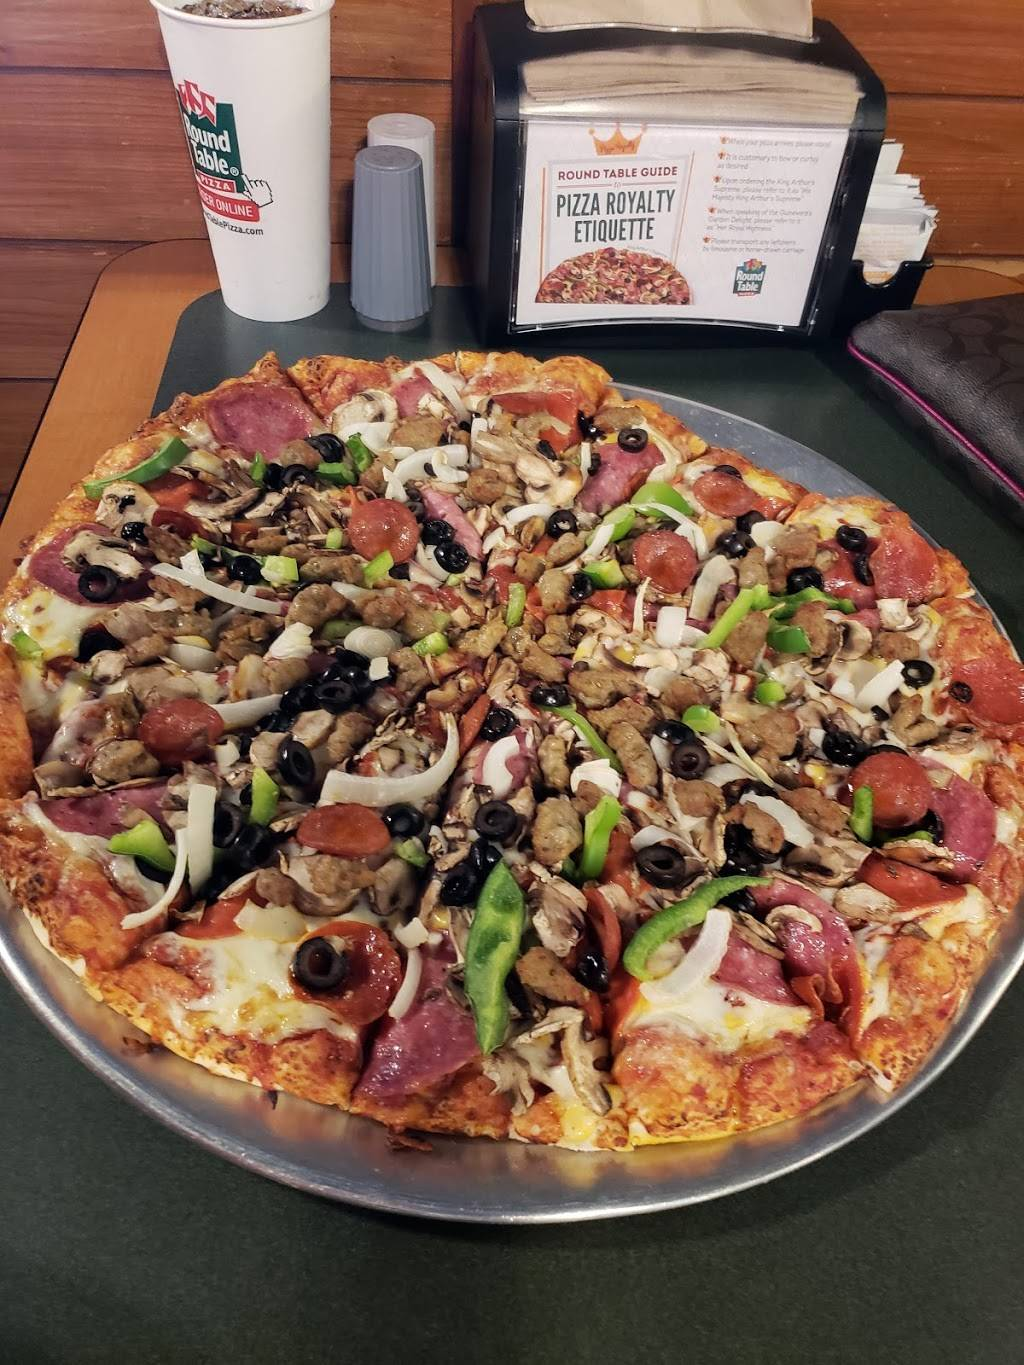 Round Table Pizza Meal Delivery 9824 N Magnolia Ave